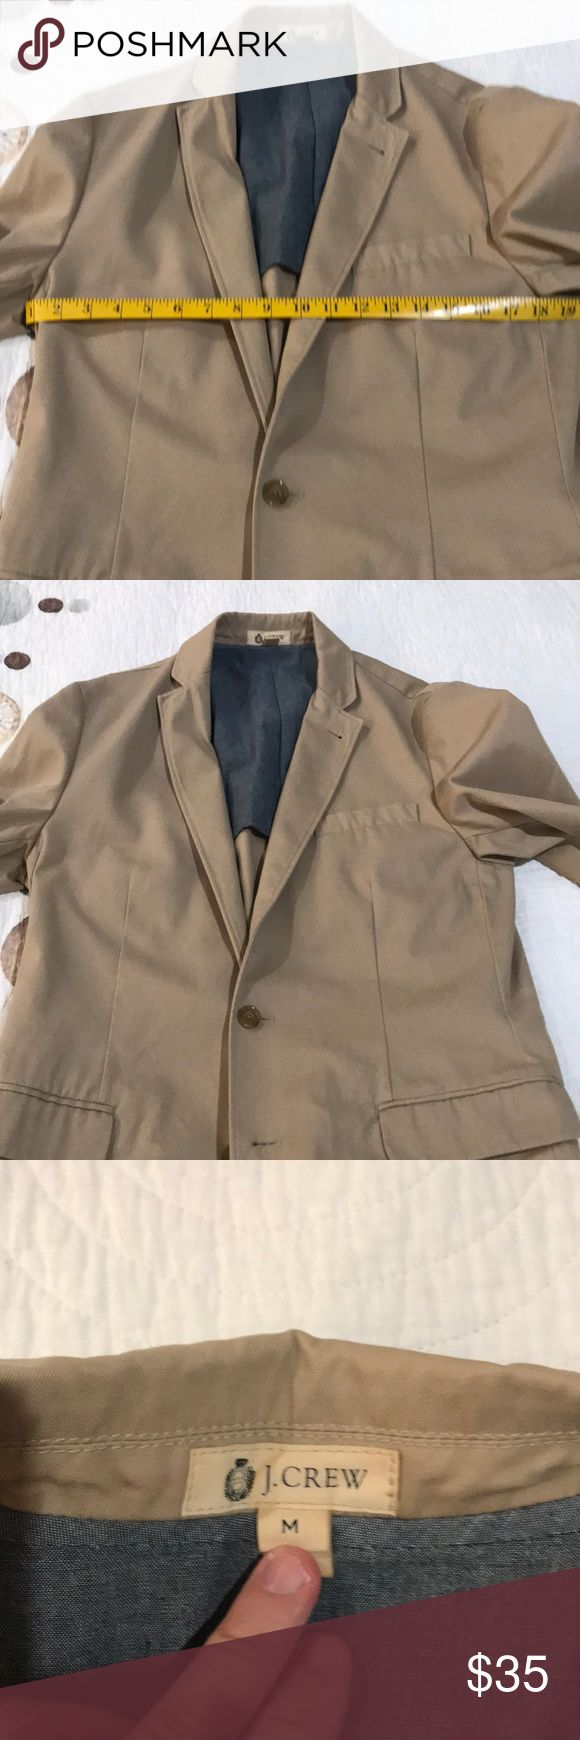 J Crew Ludlow khaki blazer. A J Crew Ludlow khaki cotton blazer. It is tagged as a medium. My suit size is 40R and it fits me fine. The blazer has two buttons and is single vented. J. Crew Suits & Blazers Sport Coats & Blazers